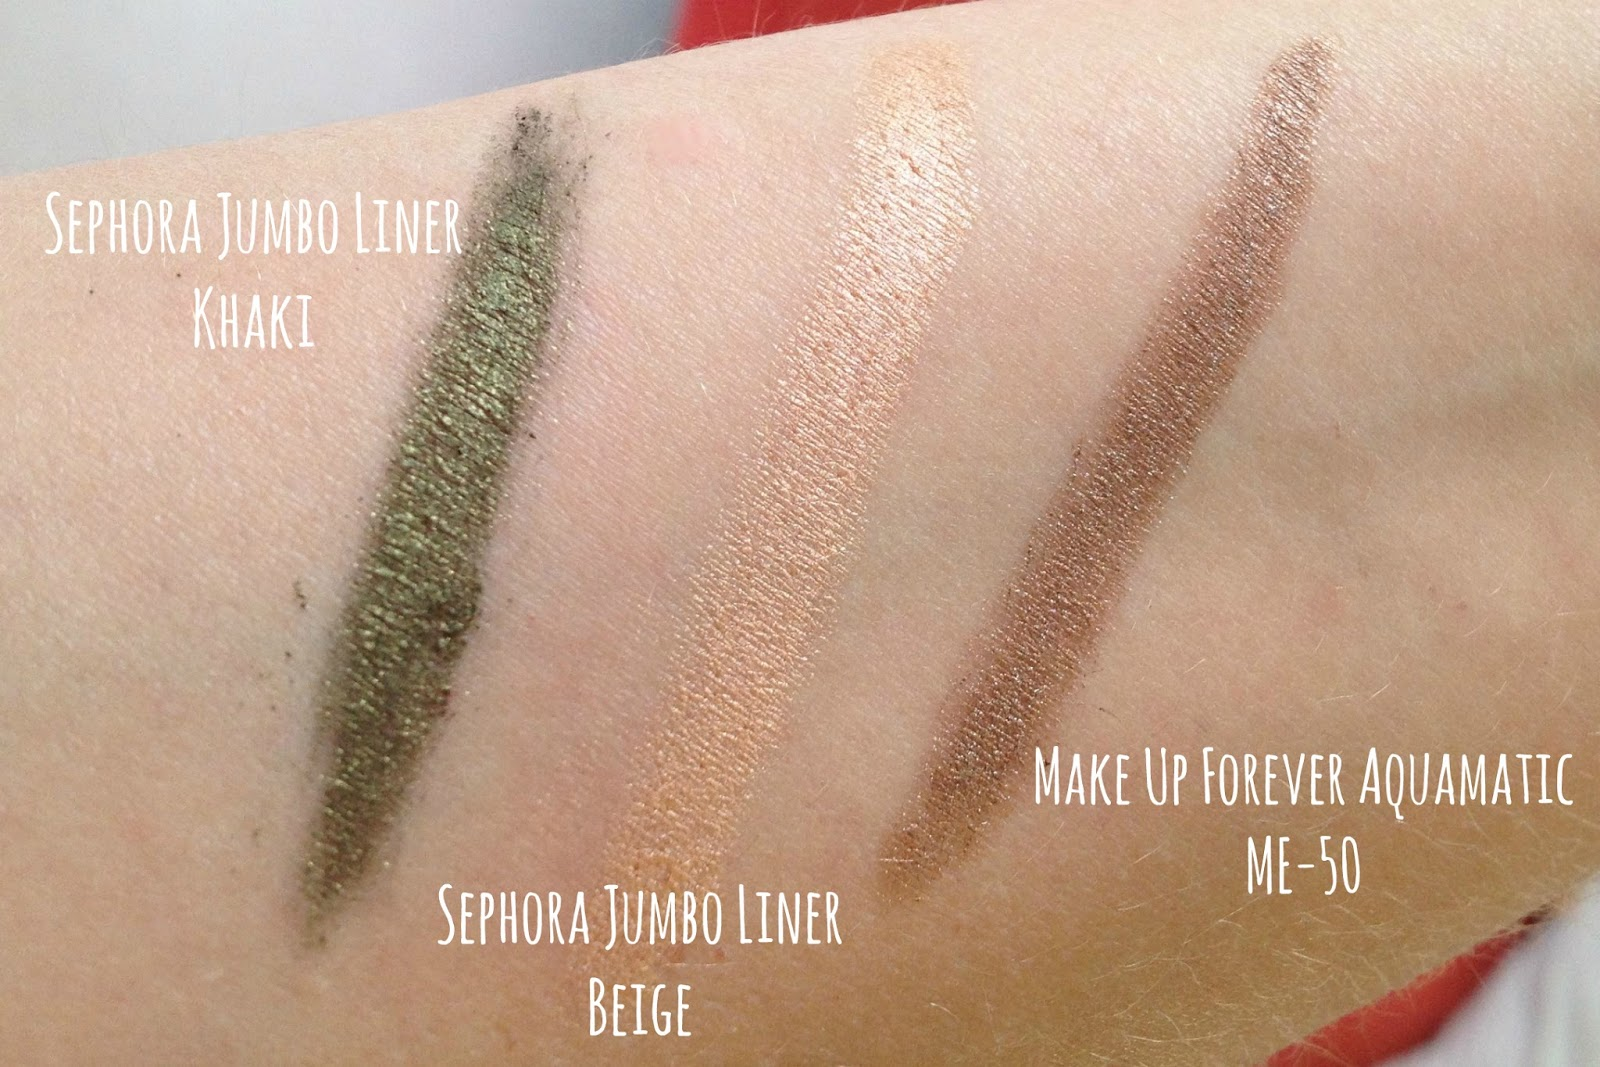 Sephora Jumbo Liner 12H Wear Waterproof Khaki, Beige and Make Up Forever Aqua Matic ME-50 swatches